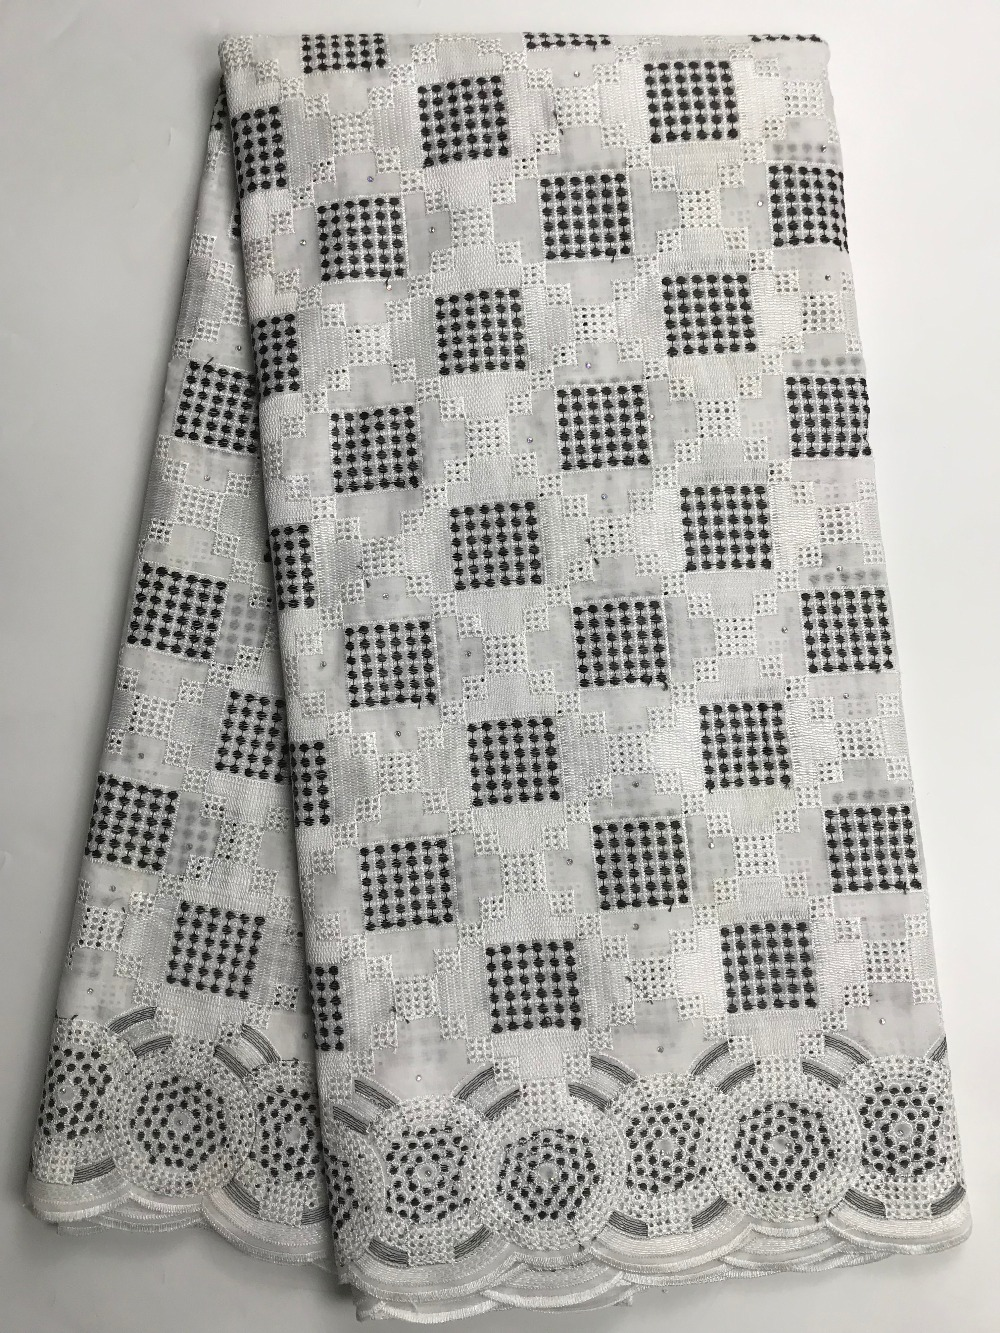 African Cotton Swiss Voile Lace Fabric 2019 High Quality Stones Swiss Voile Lace In Switzerland Cotton Lace FabricAfrican Cotton Swiss Voile Lace Fabric 2019 High Quality Stones Swiss Voile Lace In Switzerland Cotton Lace Fabric